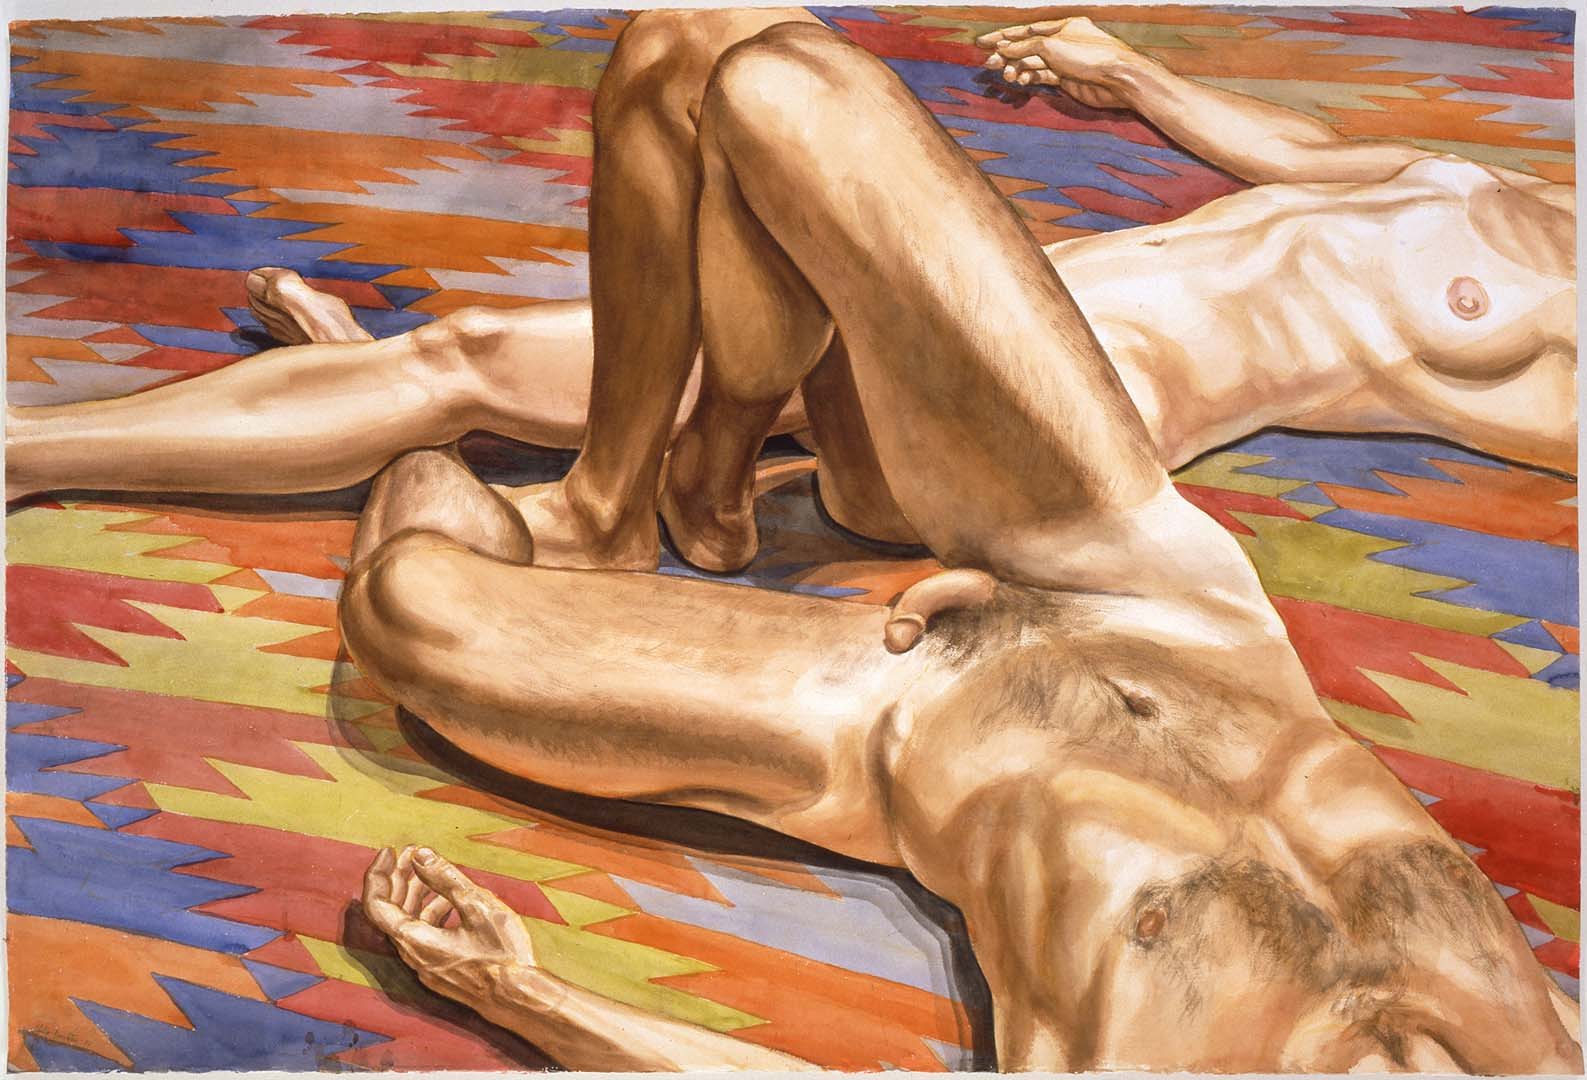 """1986 Male and Female Models on Afghanistan Rug Watercolor on Paper 40"""" x 59.5"""""""